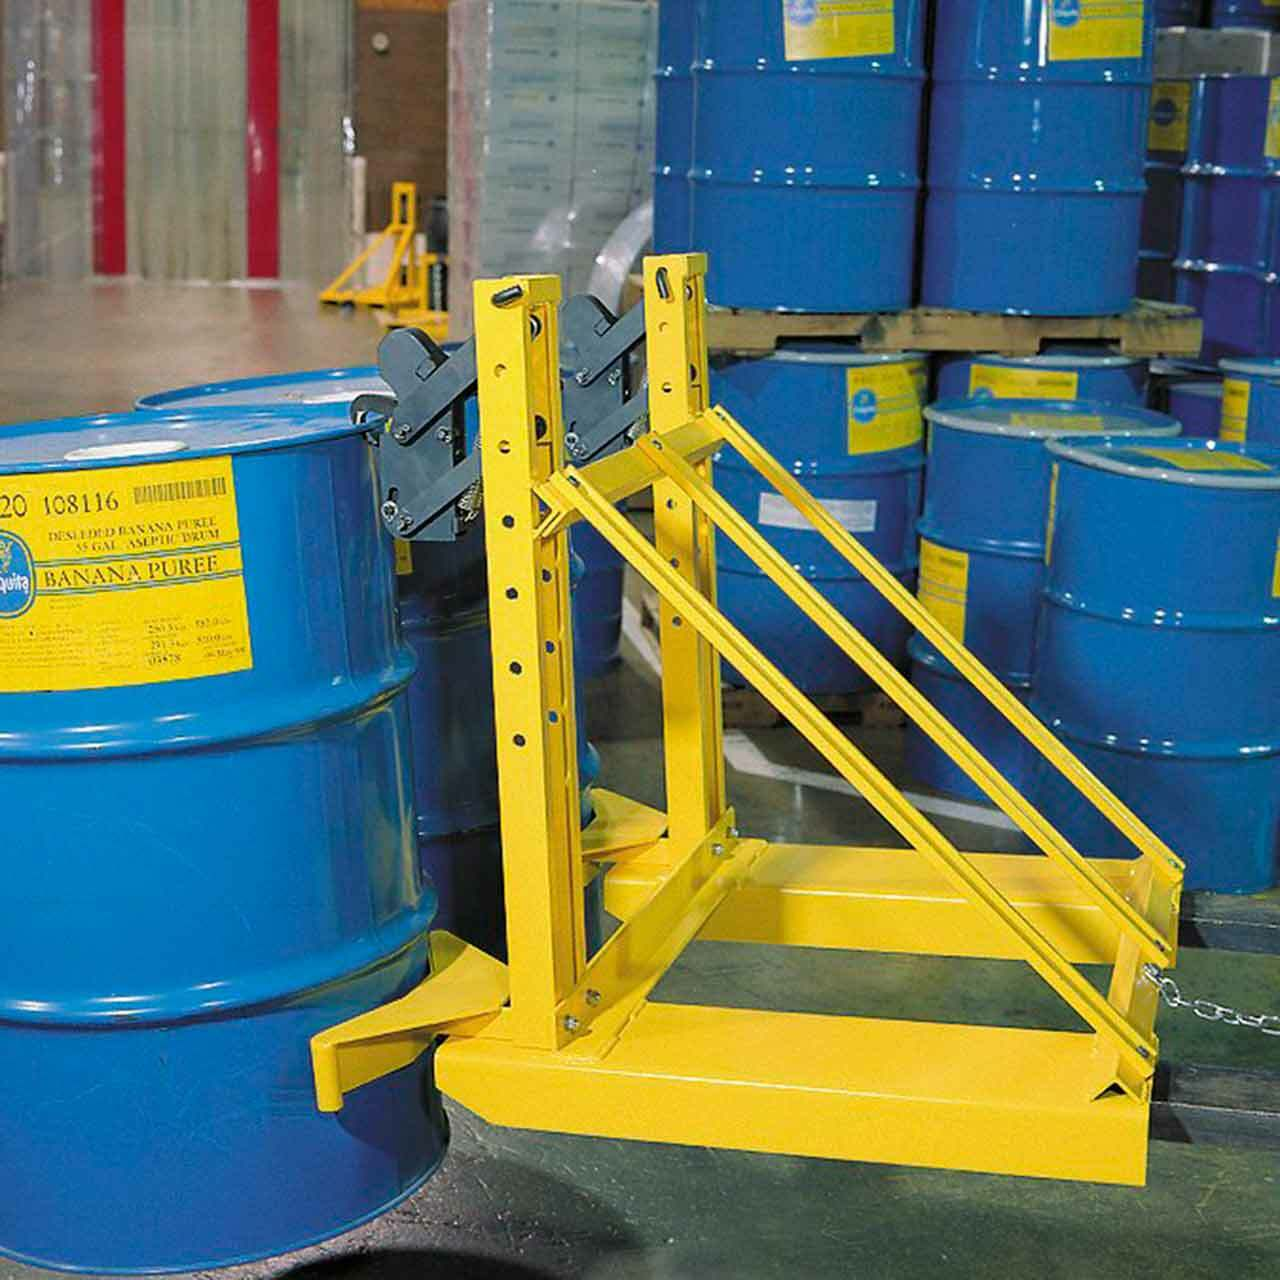 Double Fork Mounted Drum Lifter In Action